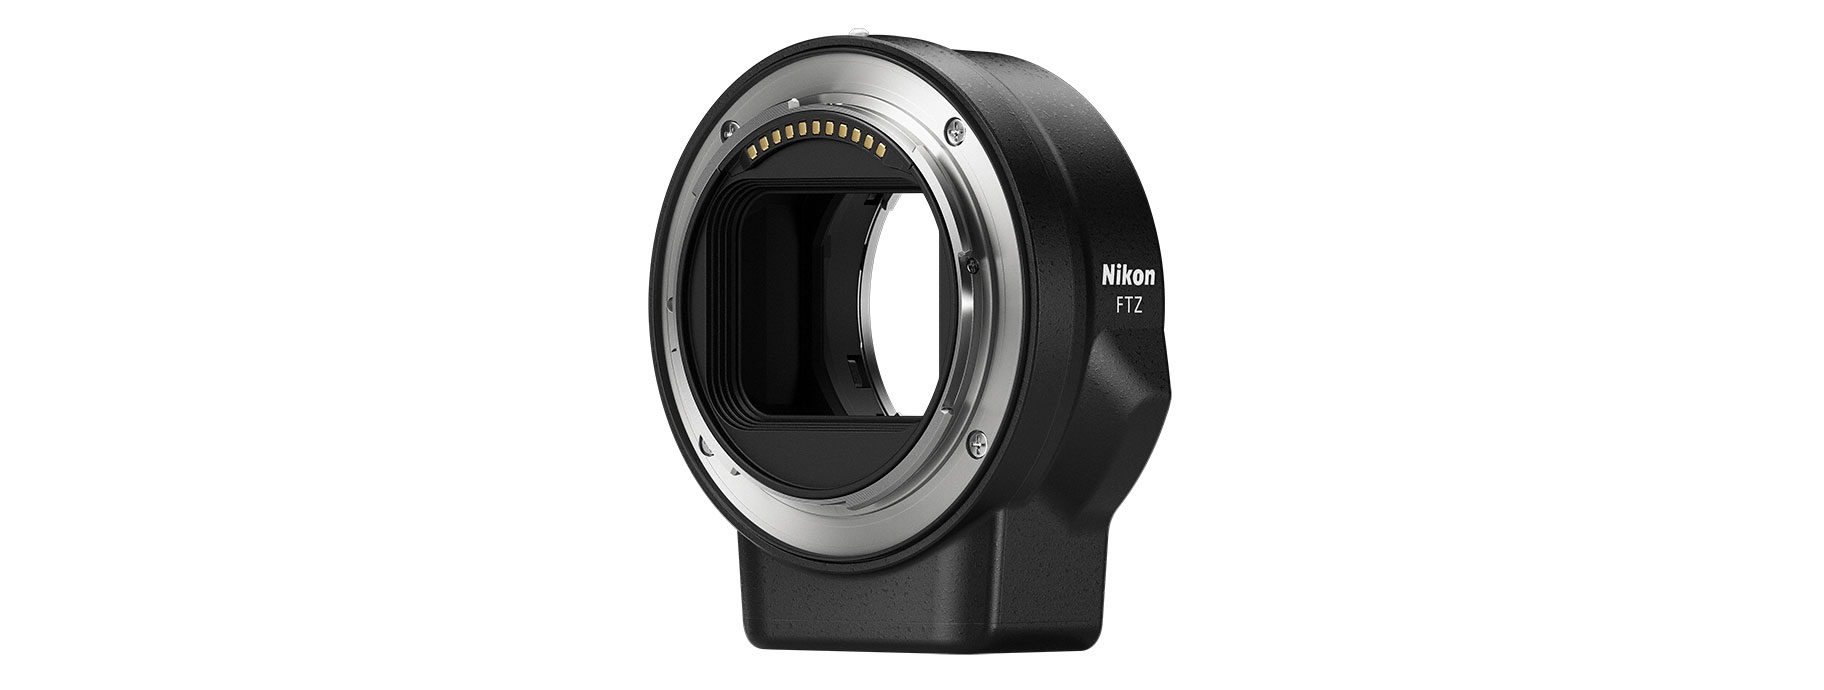 Nikon Releases Three S Line Nikkor Z Lenses The Ftz Mount Adapter Camera Lens Parts Diagram Related Keywords